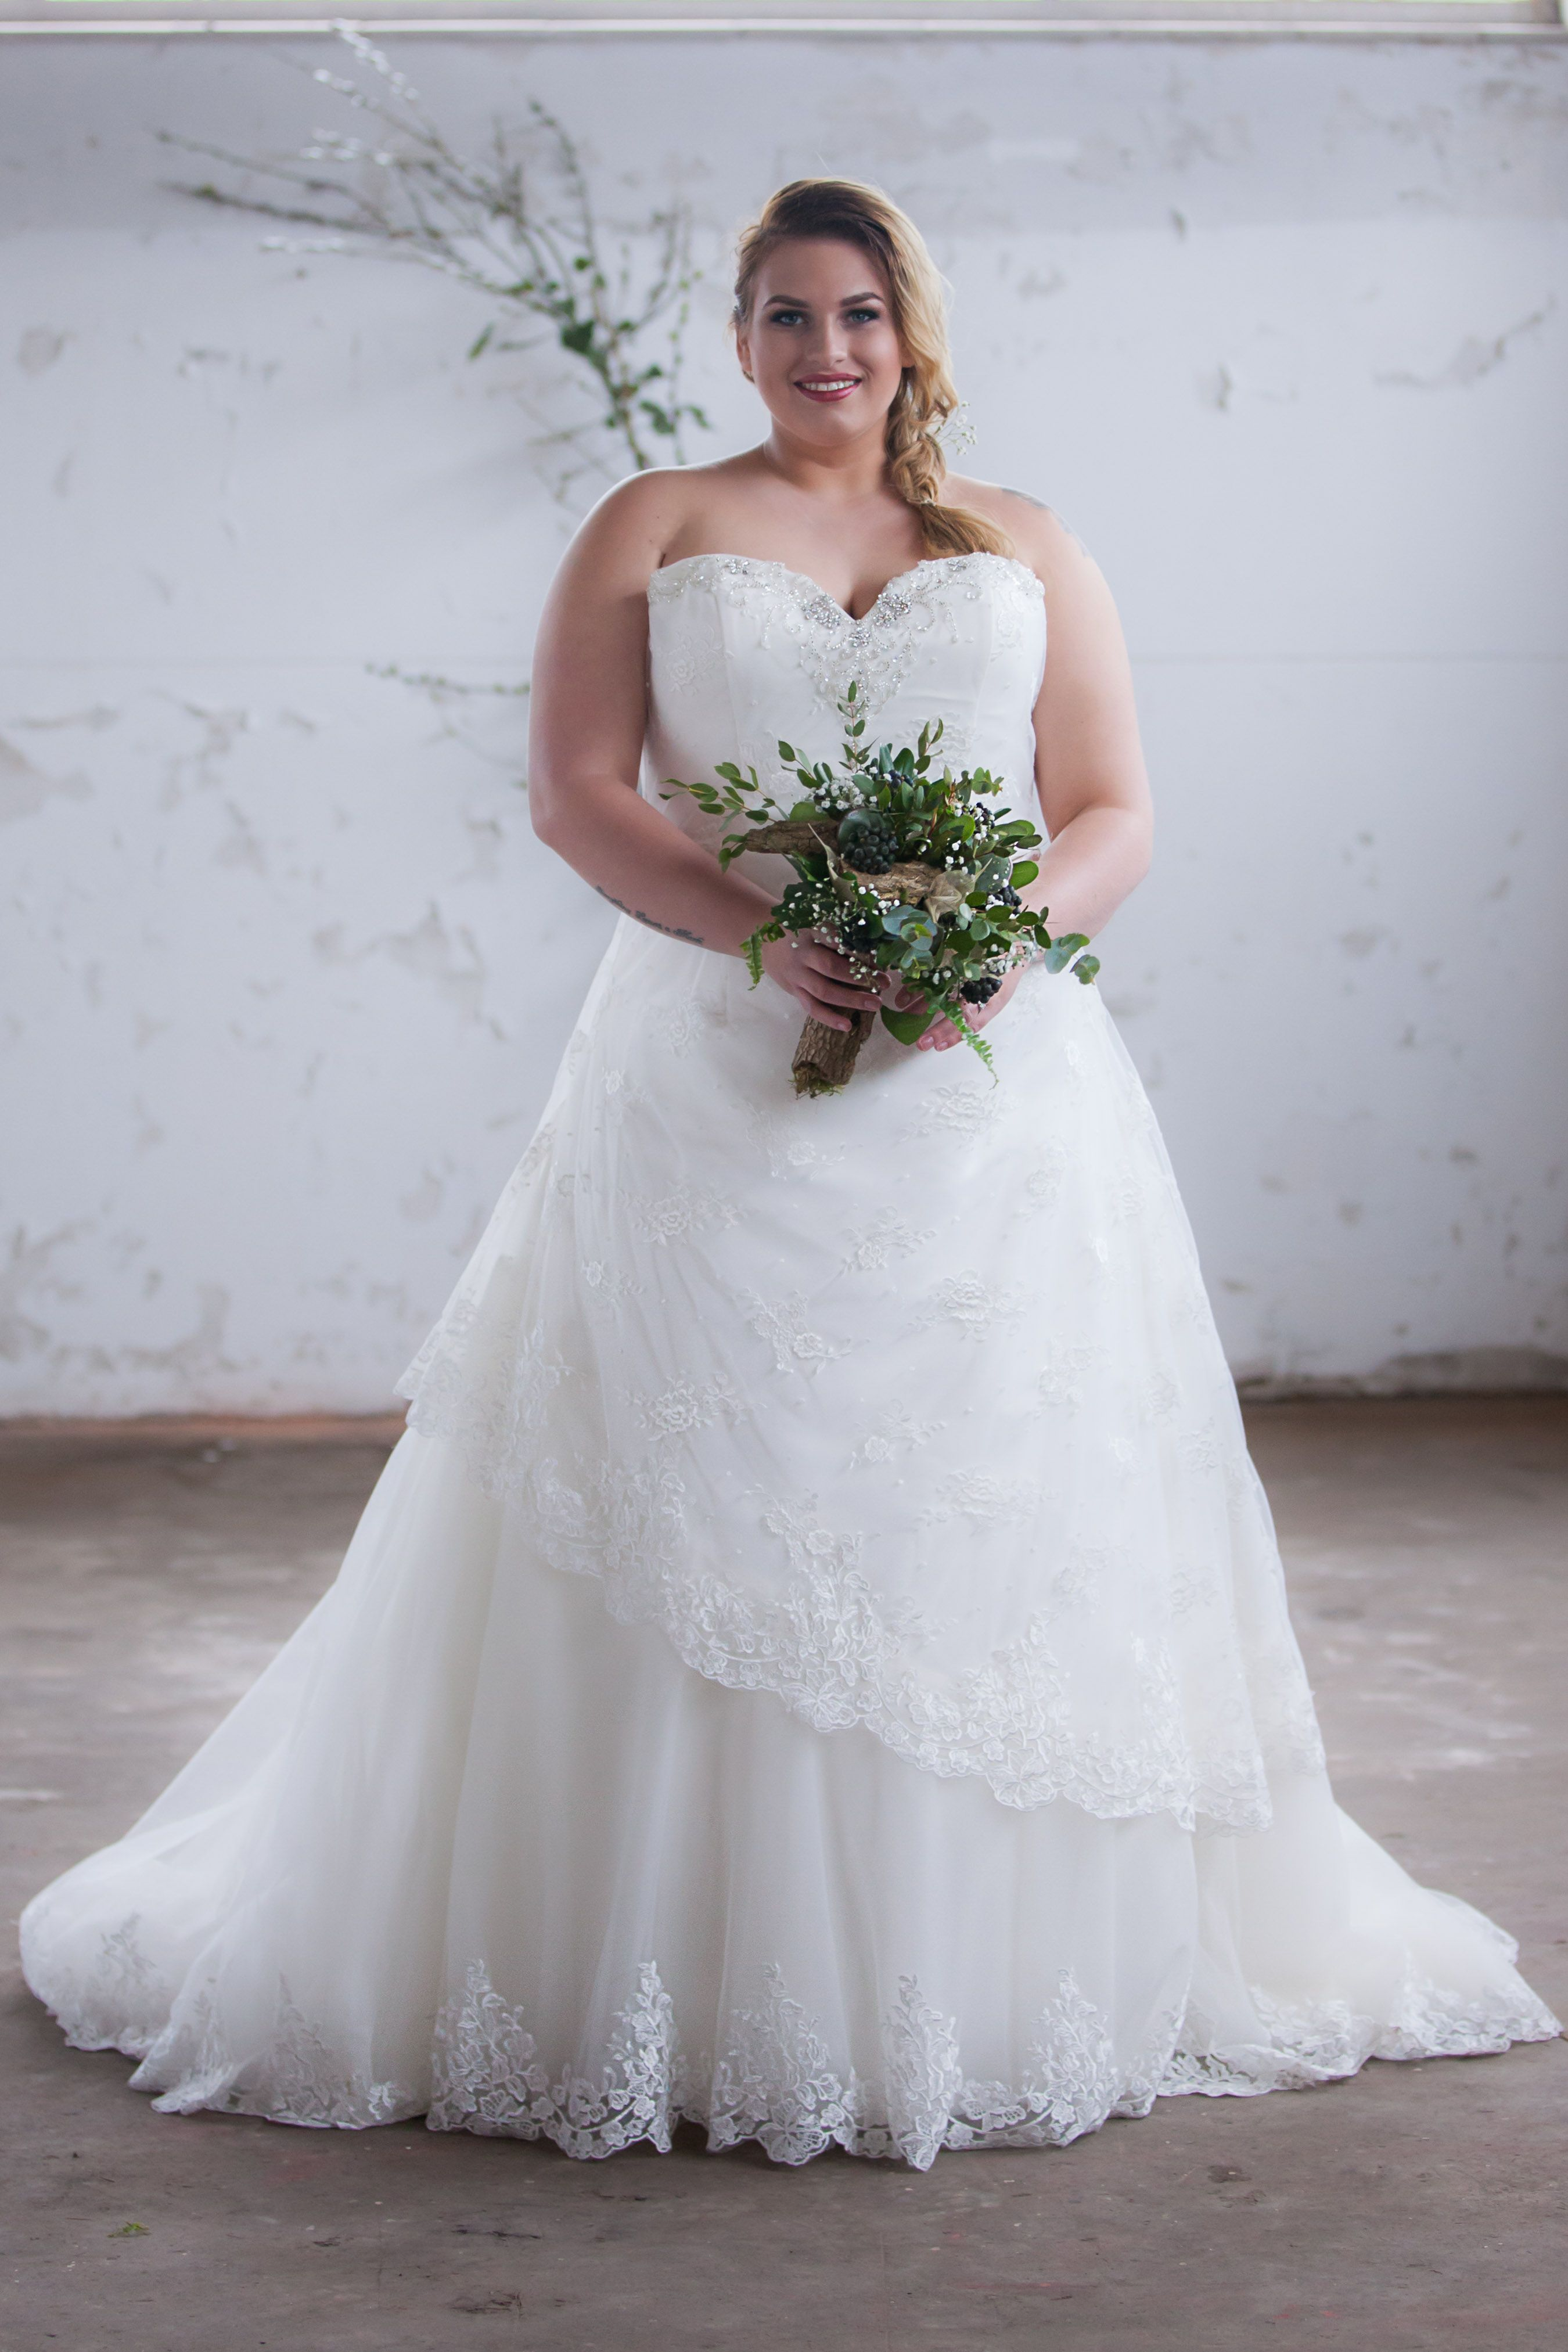 Plus size white wedding dresses  Our brand new plus size wedding gowns will soon be available for